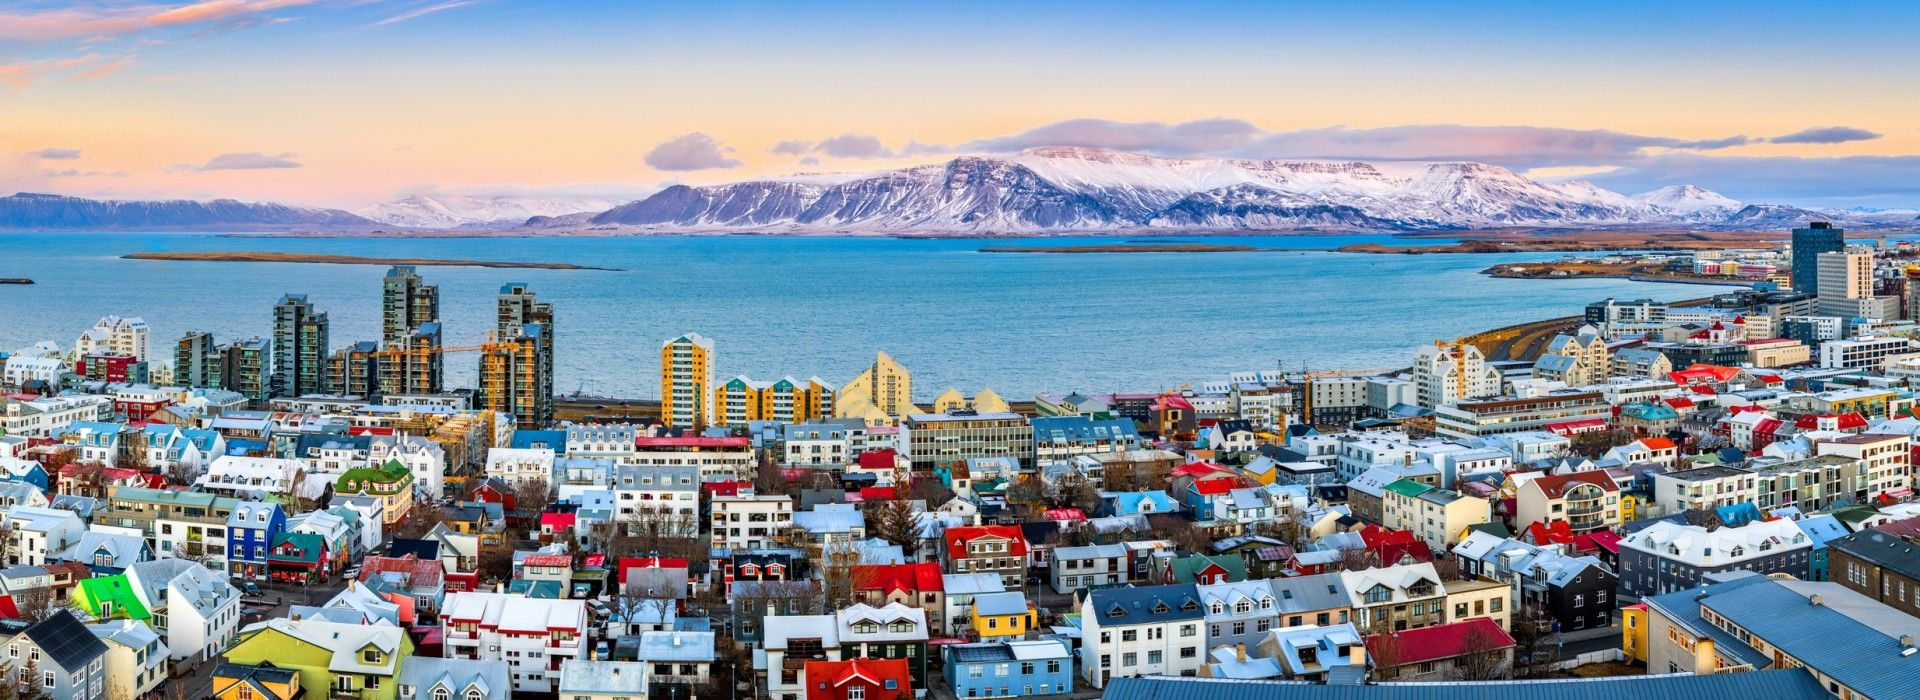 Boat tours, water sports and marine wildlife in Northern Europe